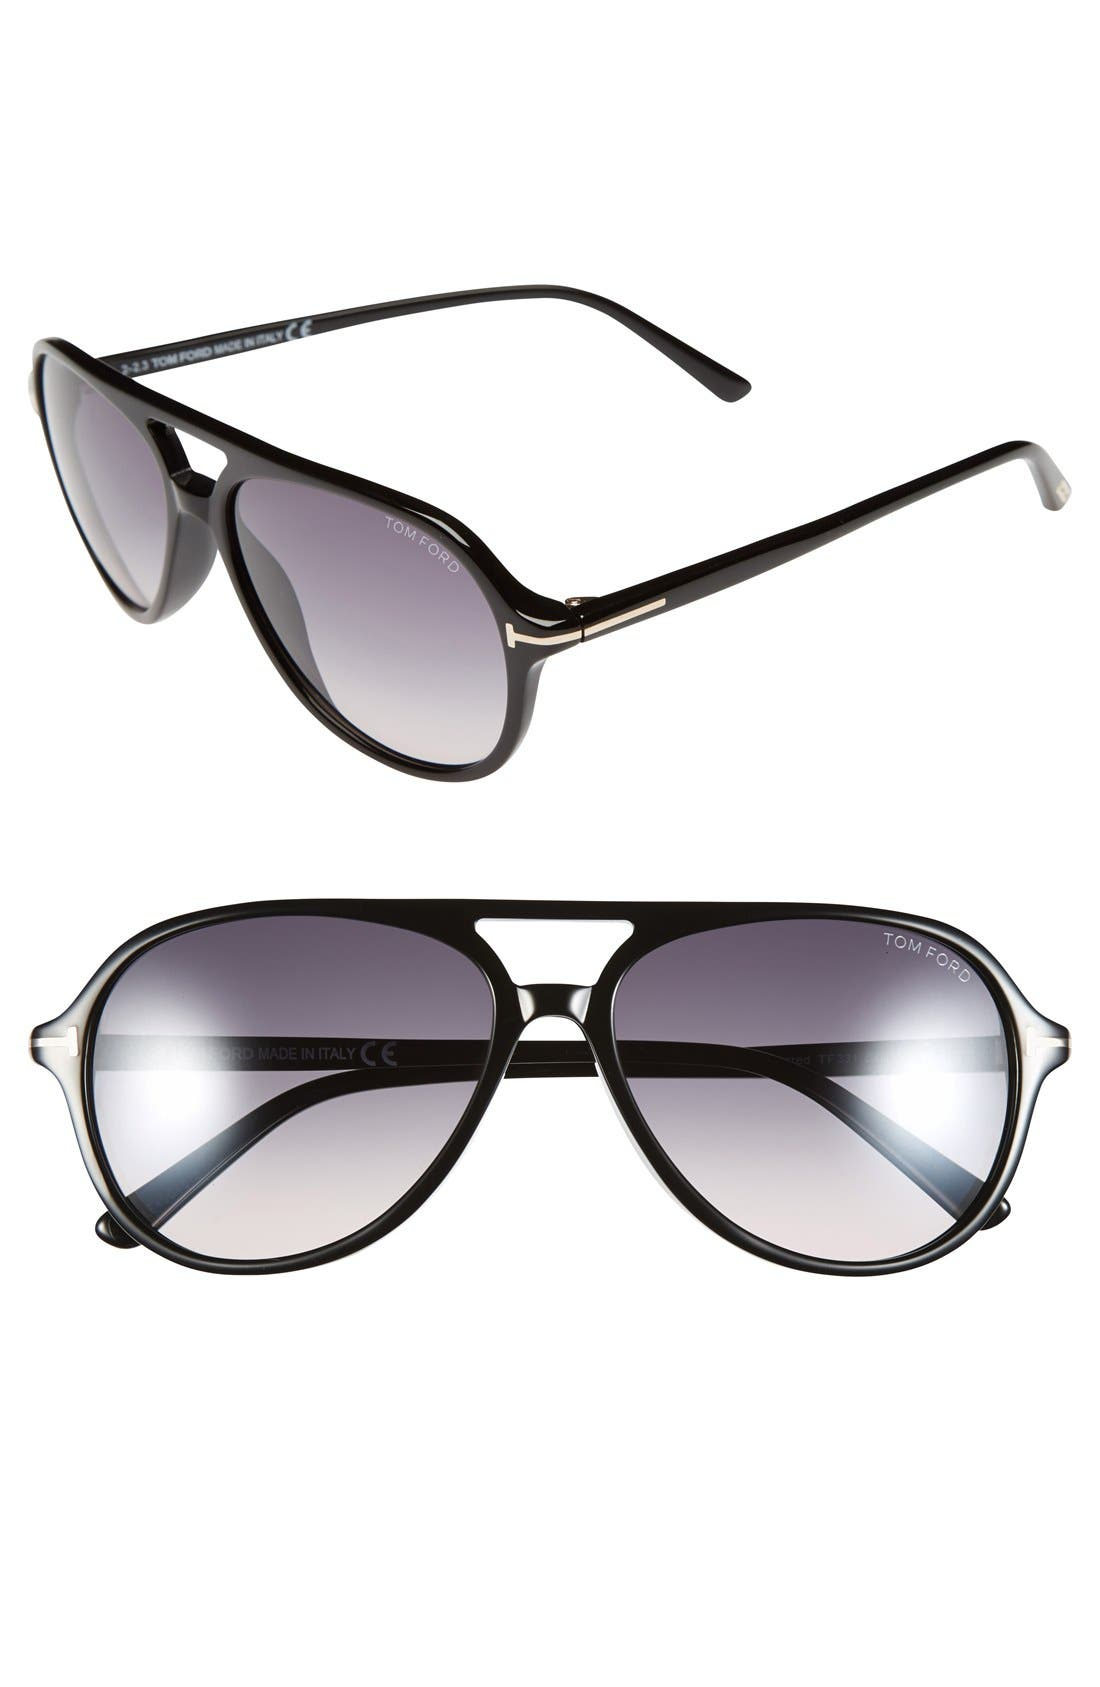 Main Image - Tom Ford 'Jared' 58mm Sunglasses